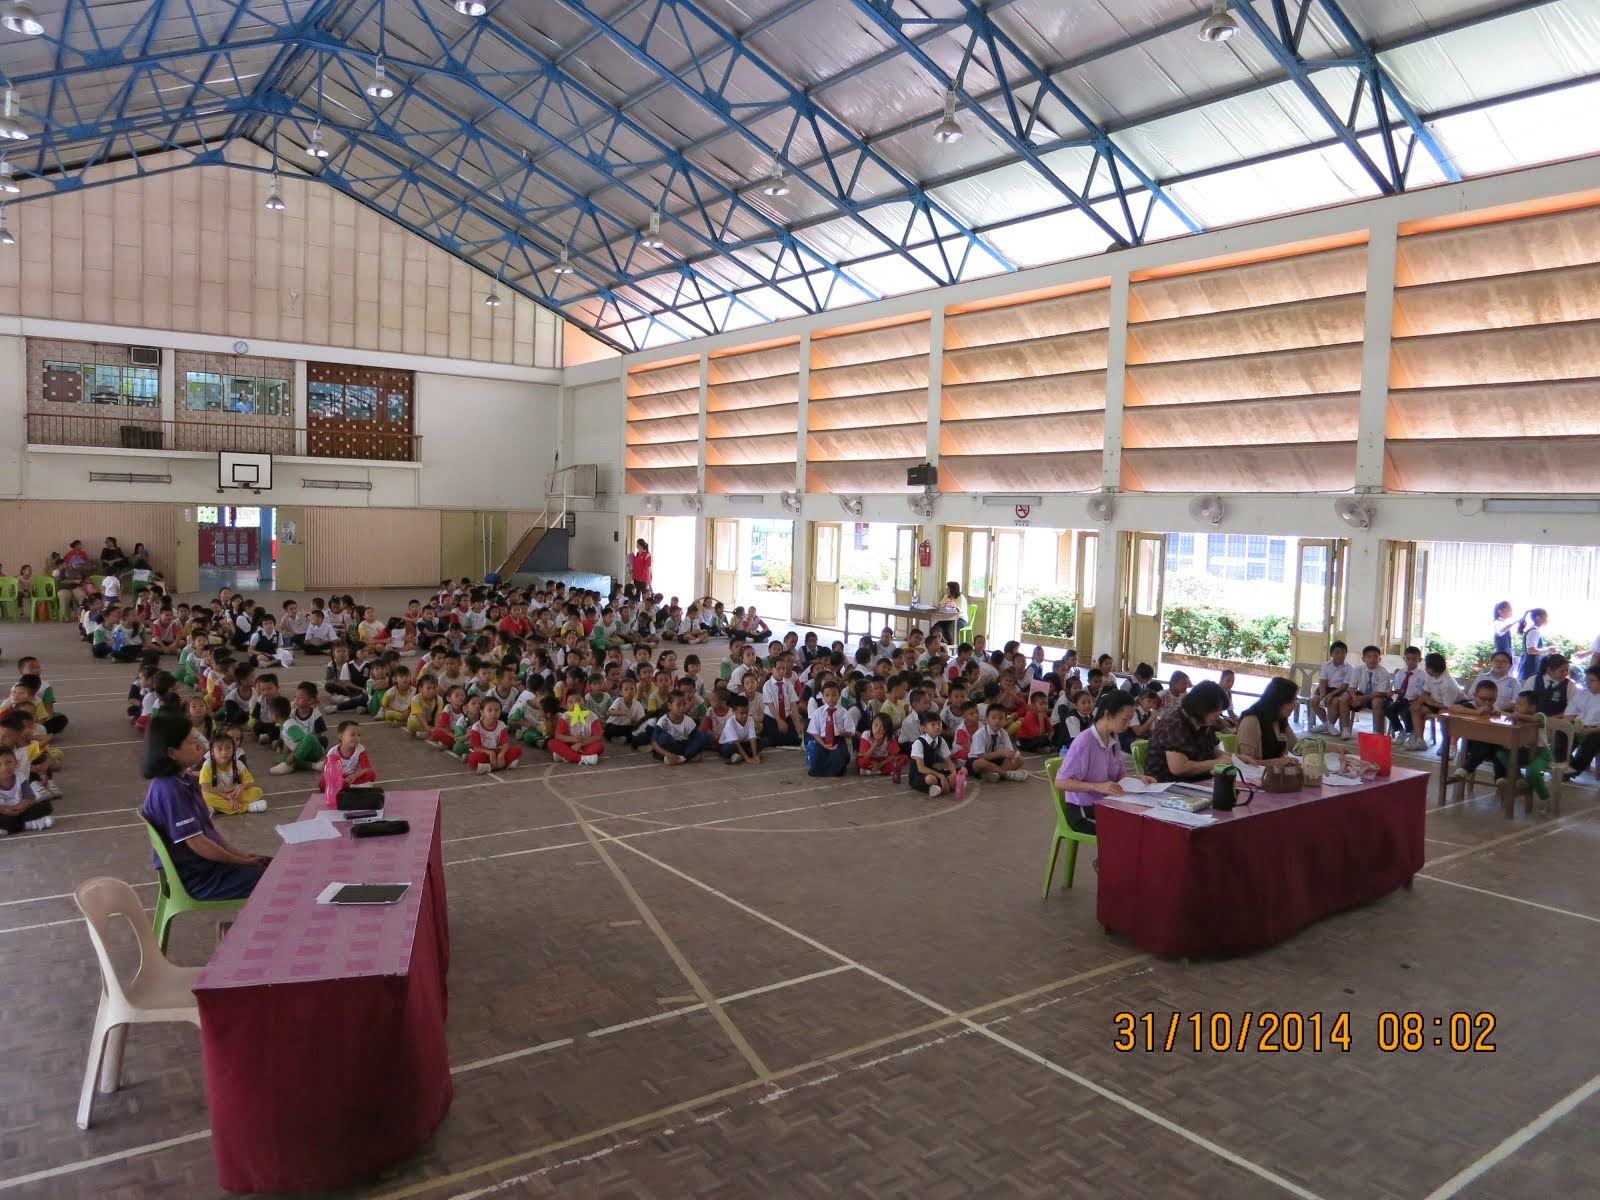 The Competition were held at the school hall.